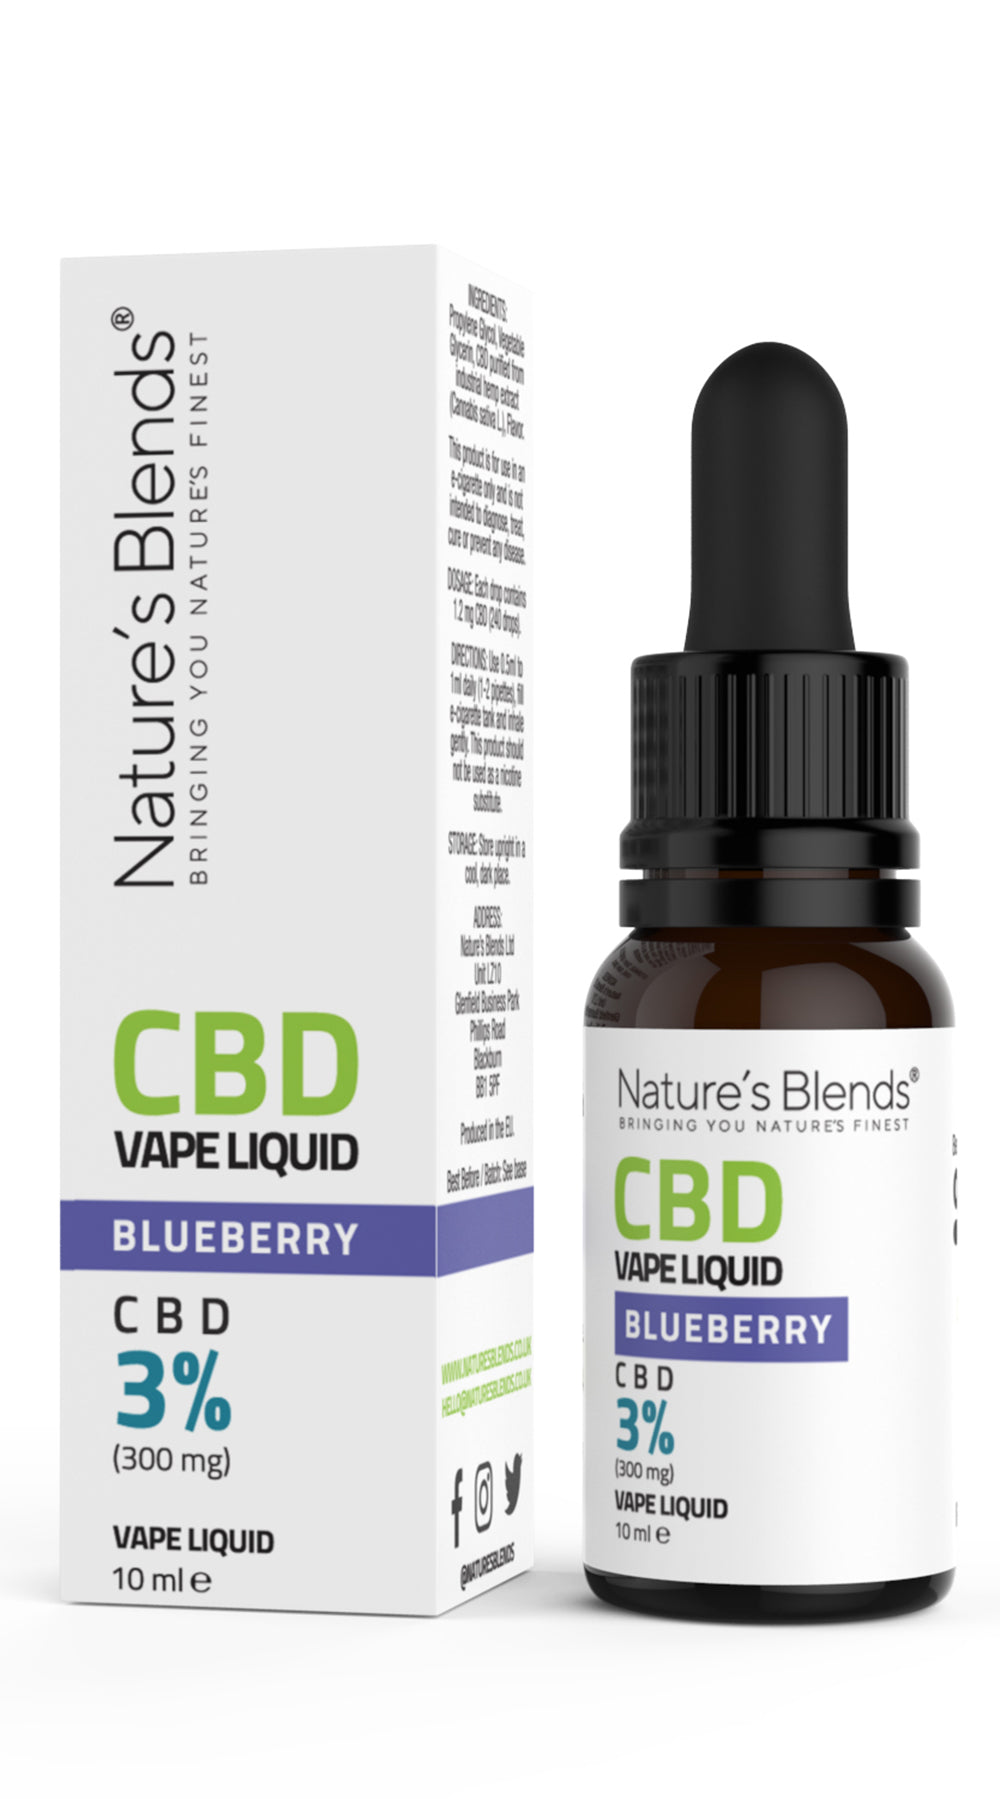 A 10ml bottle of 300mg cbd vape blueberry flavour along side natures blends packaging